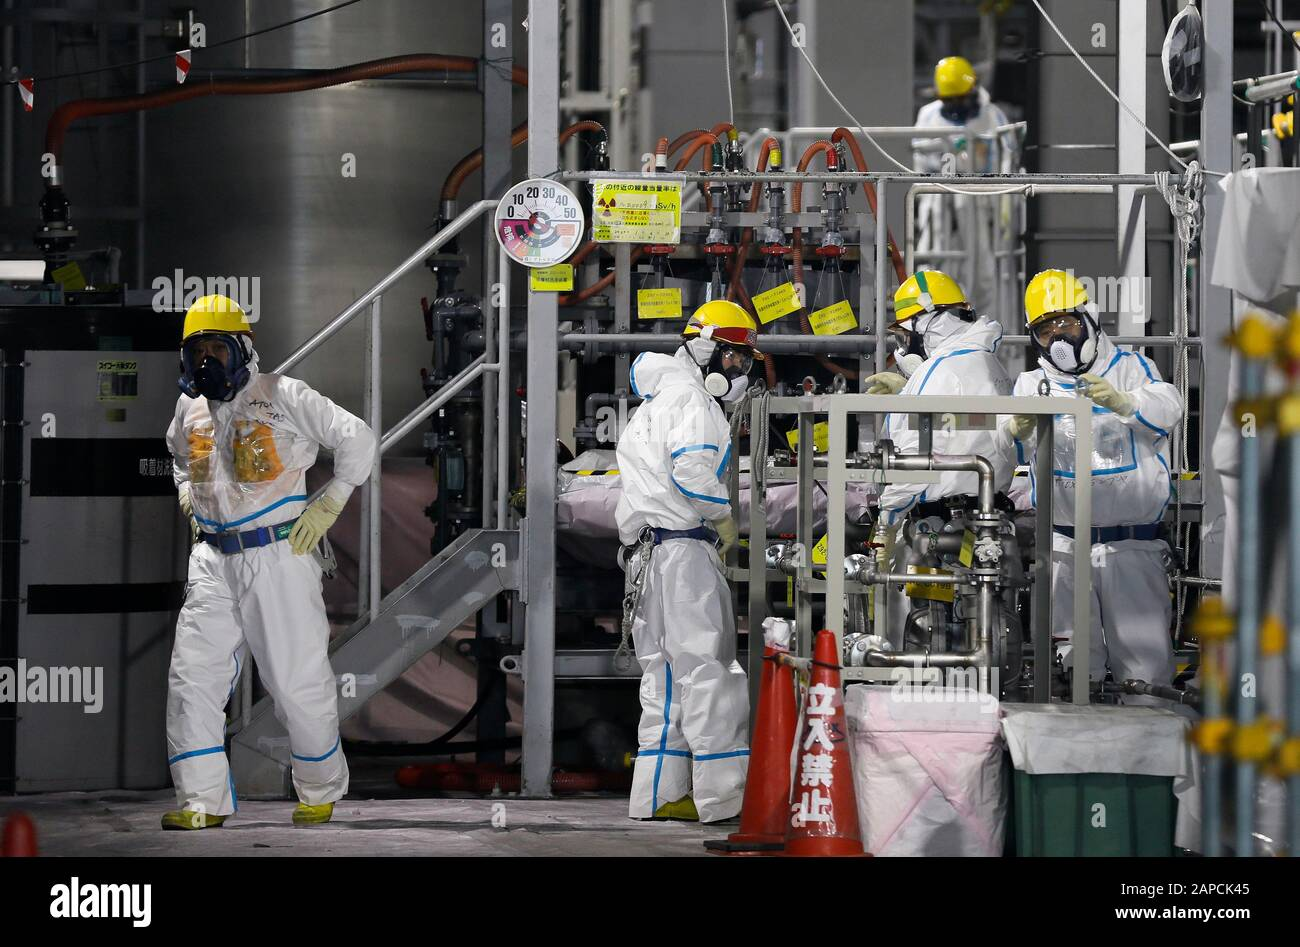 January 22, 2020, Okuma, Fukushima, Japan: Fully covered workers check water processing system ALPS(Multi-nuclide retrieval equipment) where process contaminated water to store in tanks at ALPS' house of  tsunami-devastated Tokyo Electric Power Company (TEPCO) Fukushima Daiichi Nuclear Power Plant in Okuma town, Fukushima Prefecture, 22 January 2020 after transferring to new tanks. The storage tanks including water processed in the ALPS will be full around summer of 2022, TEPCO has told. Japanese government will need to decide soon how manage the processed water still including tritium.  (Cred Stock Photo